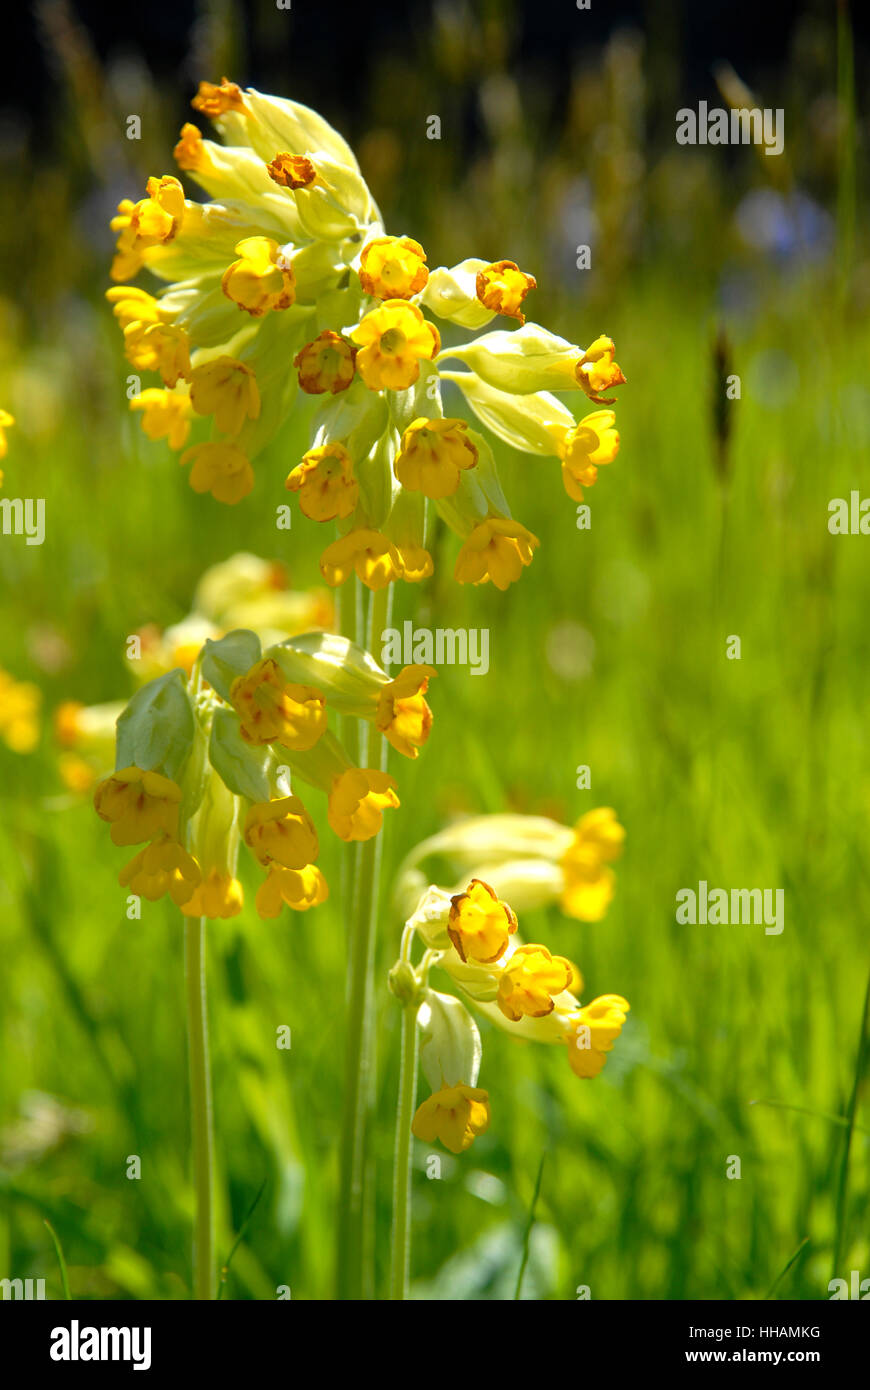 Cowslips, Primula veris, growing in a churchyard, West Wales Stock Photo